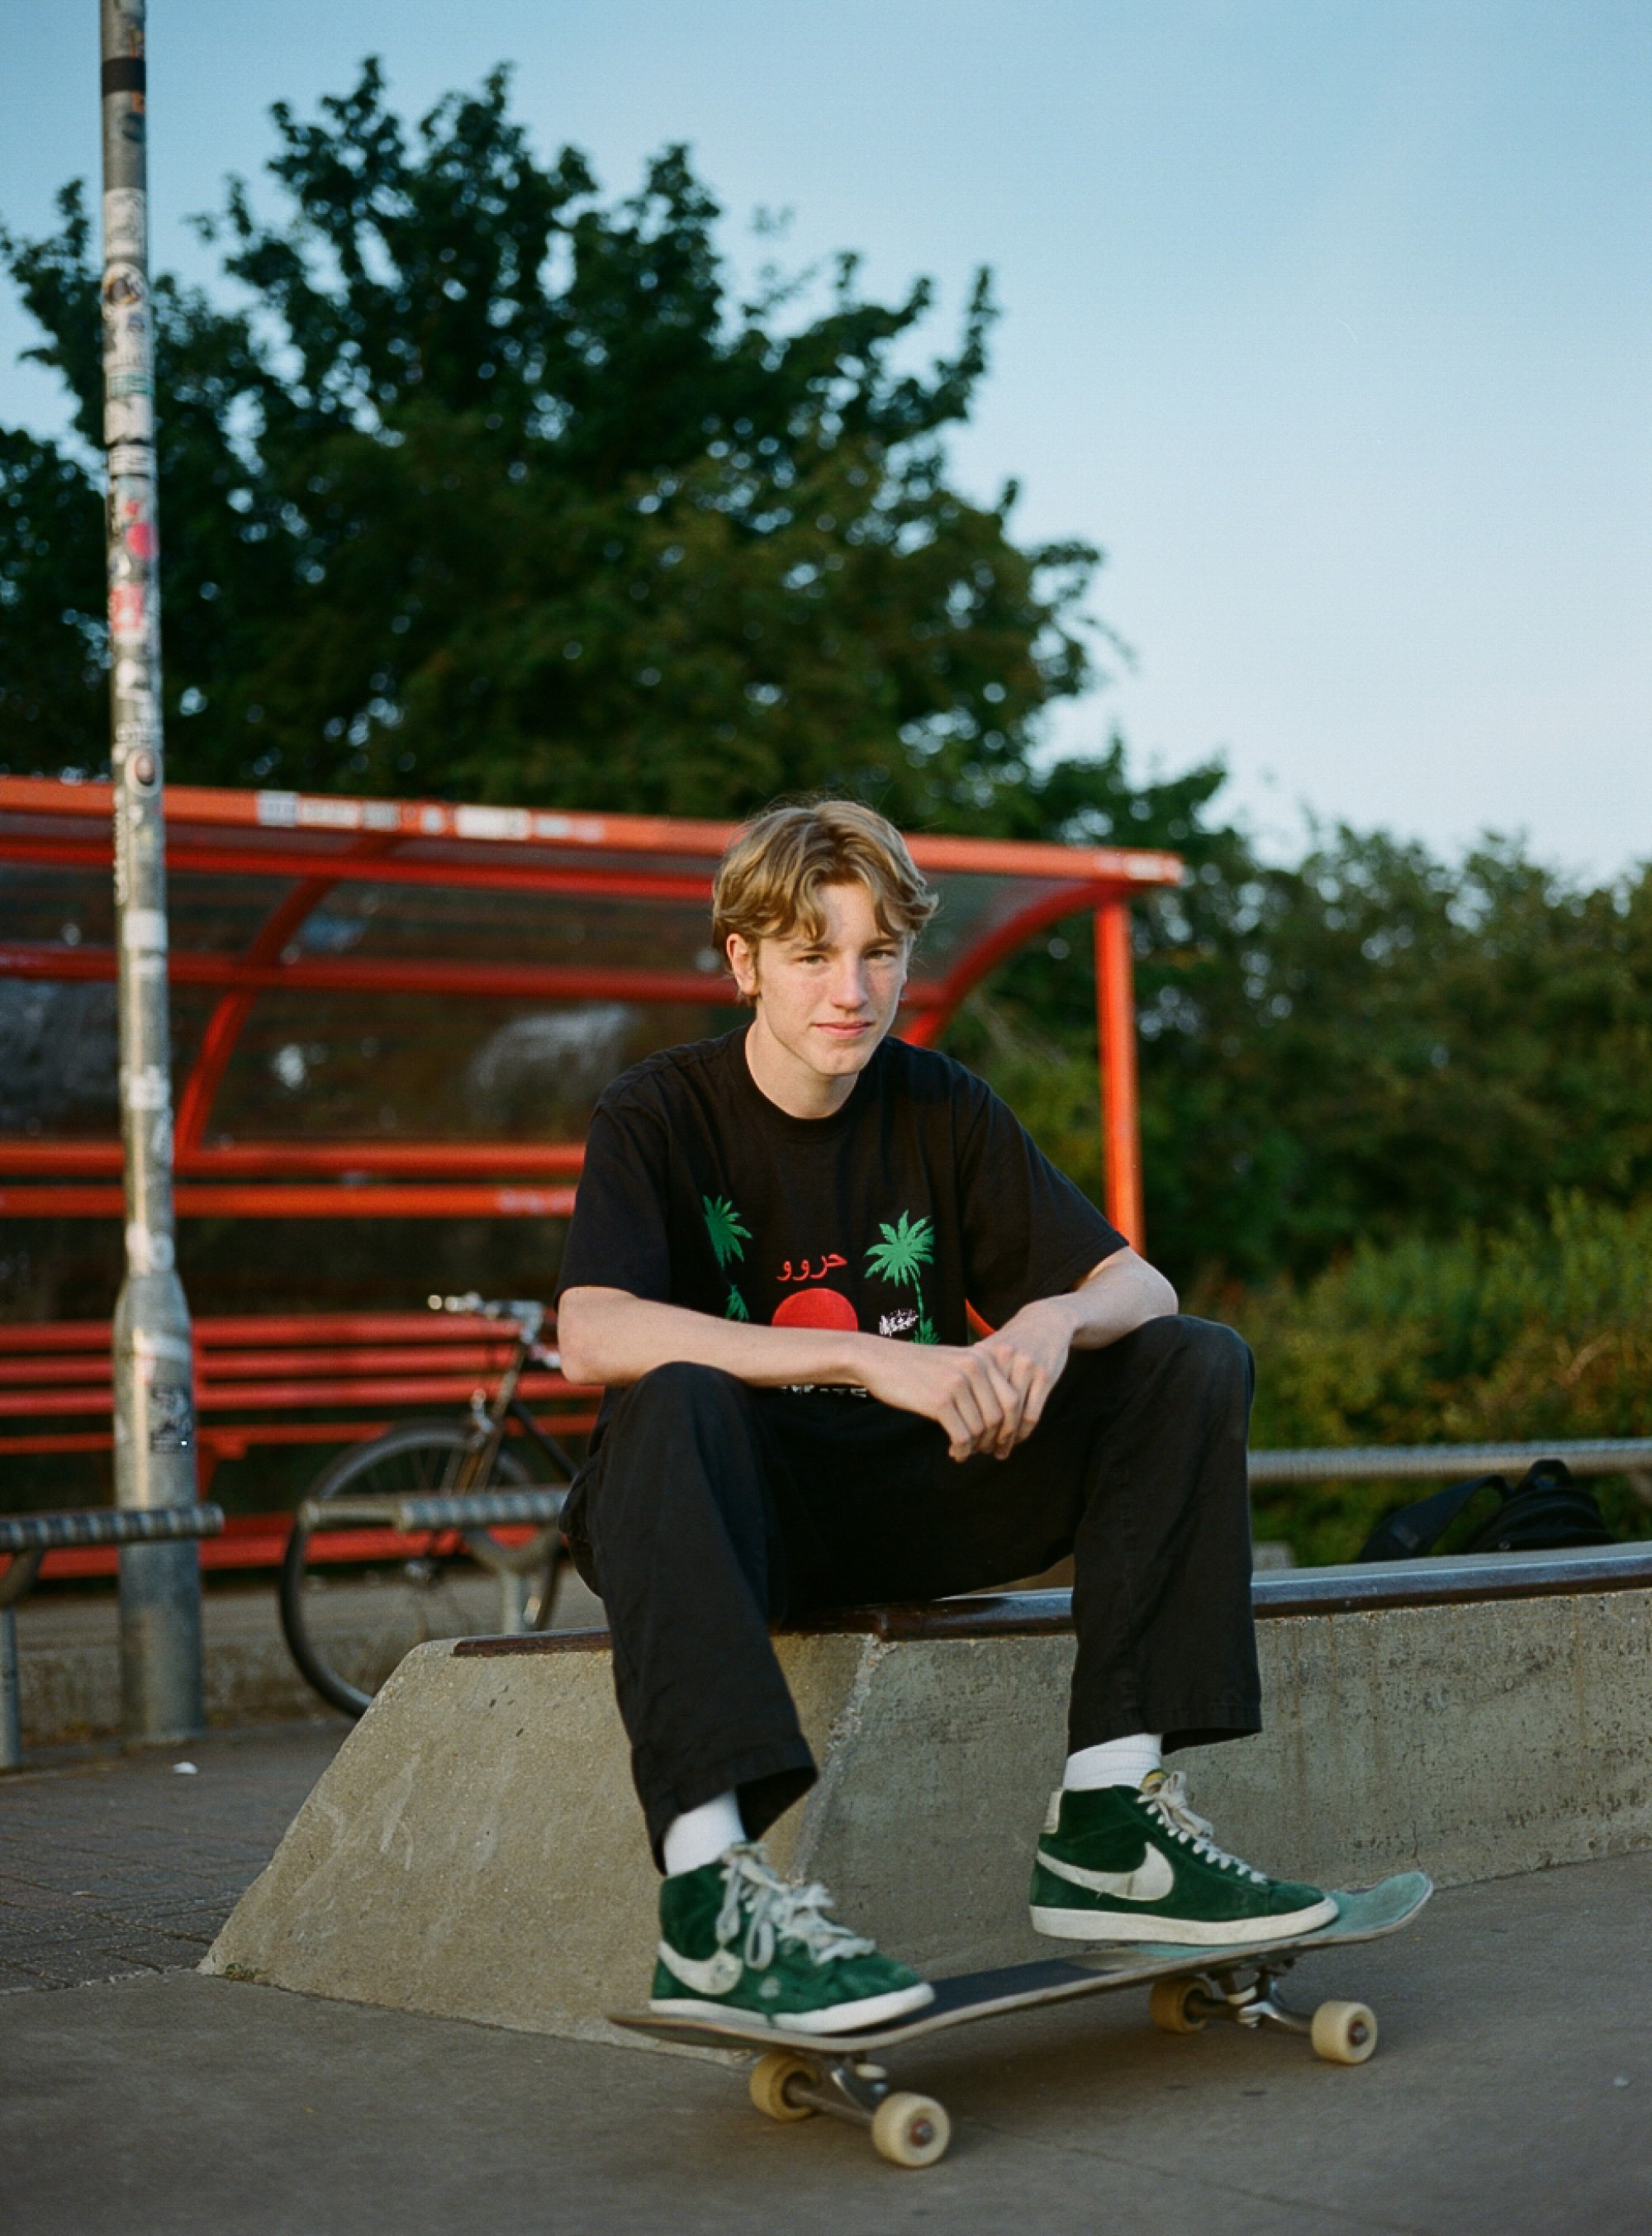 Sam Elstub analog photographer, skater, young skateboarder in colourful tee and nikes